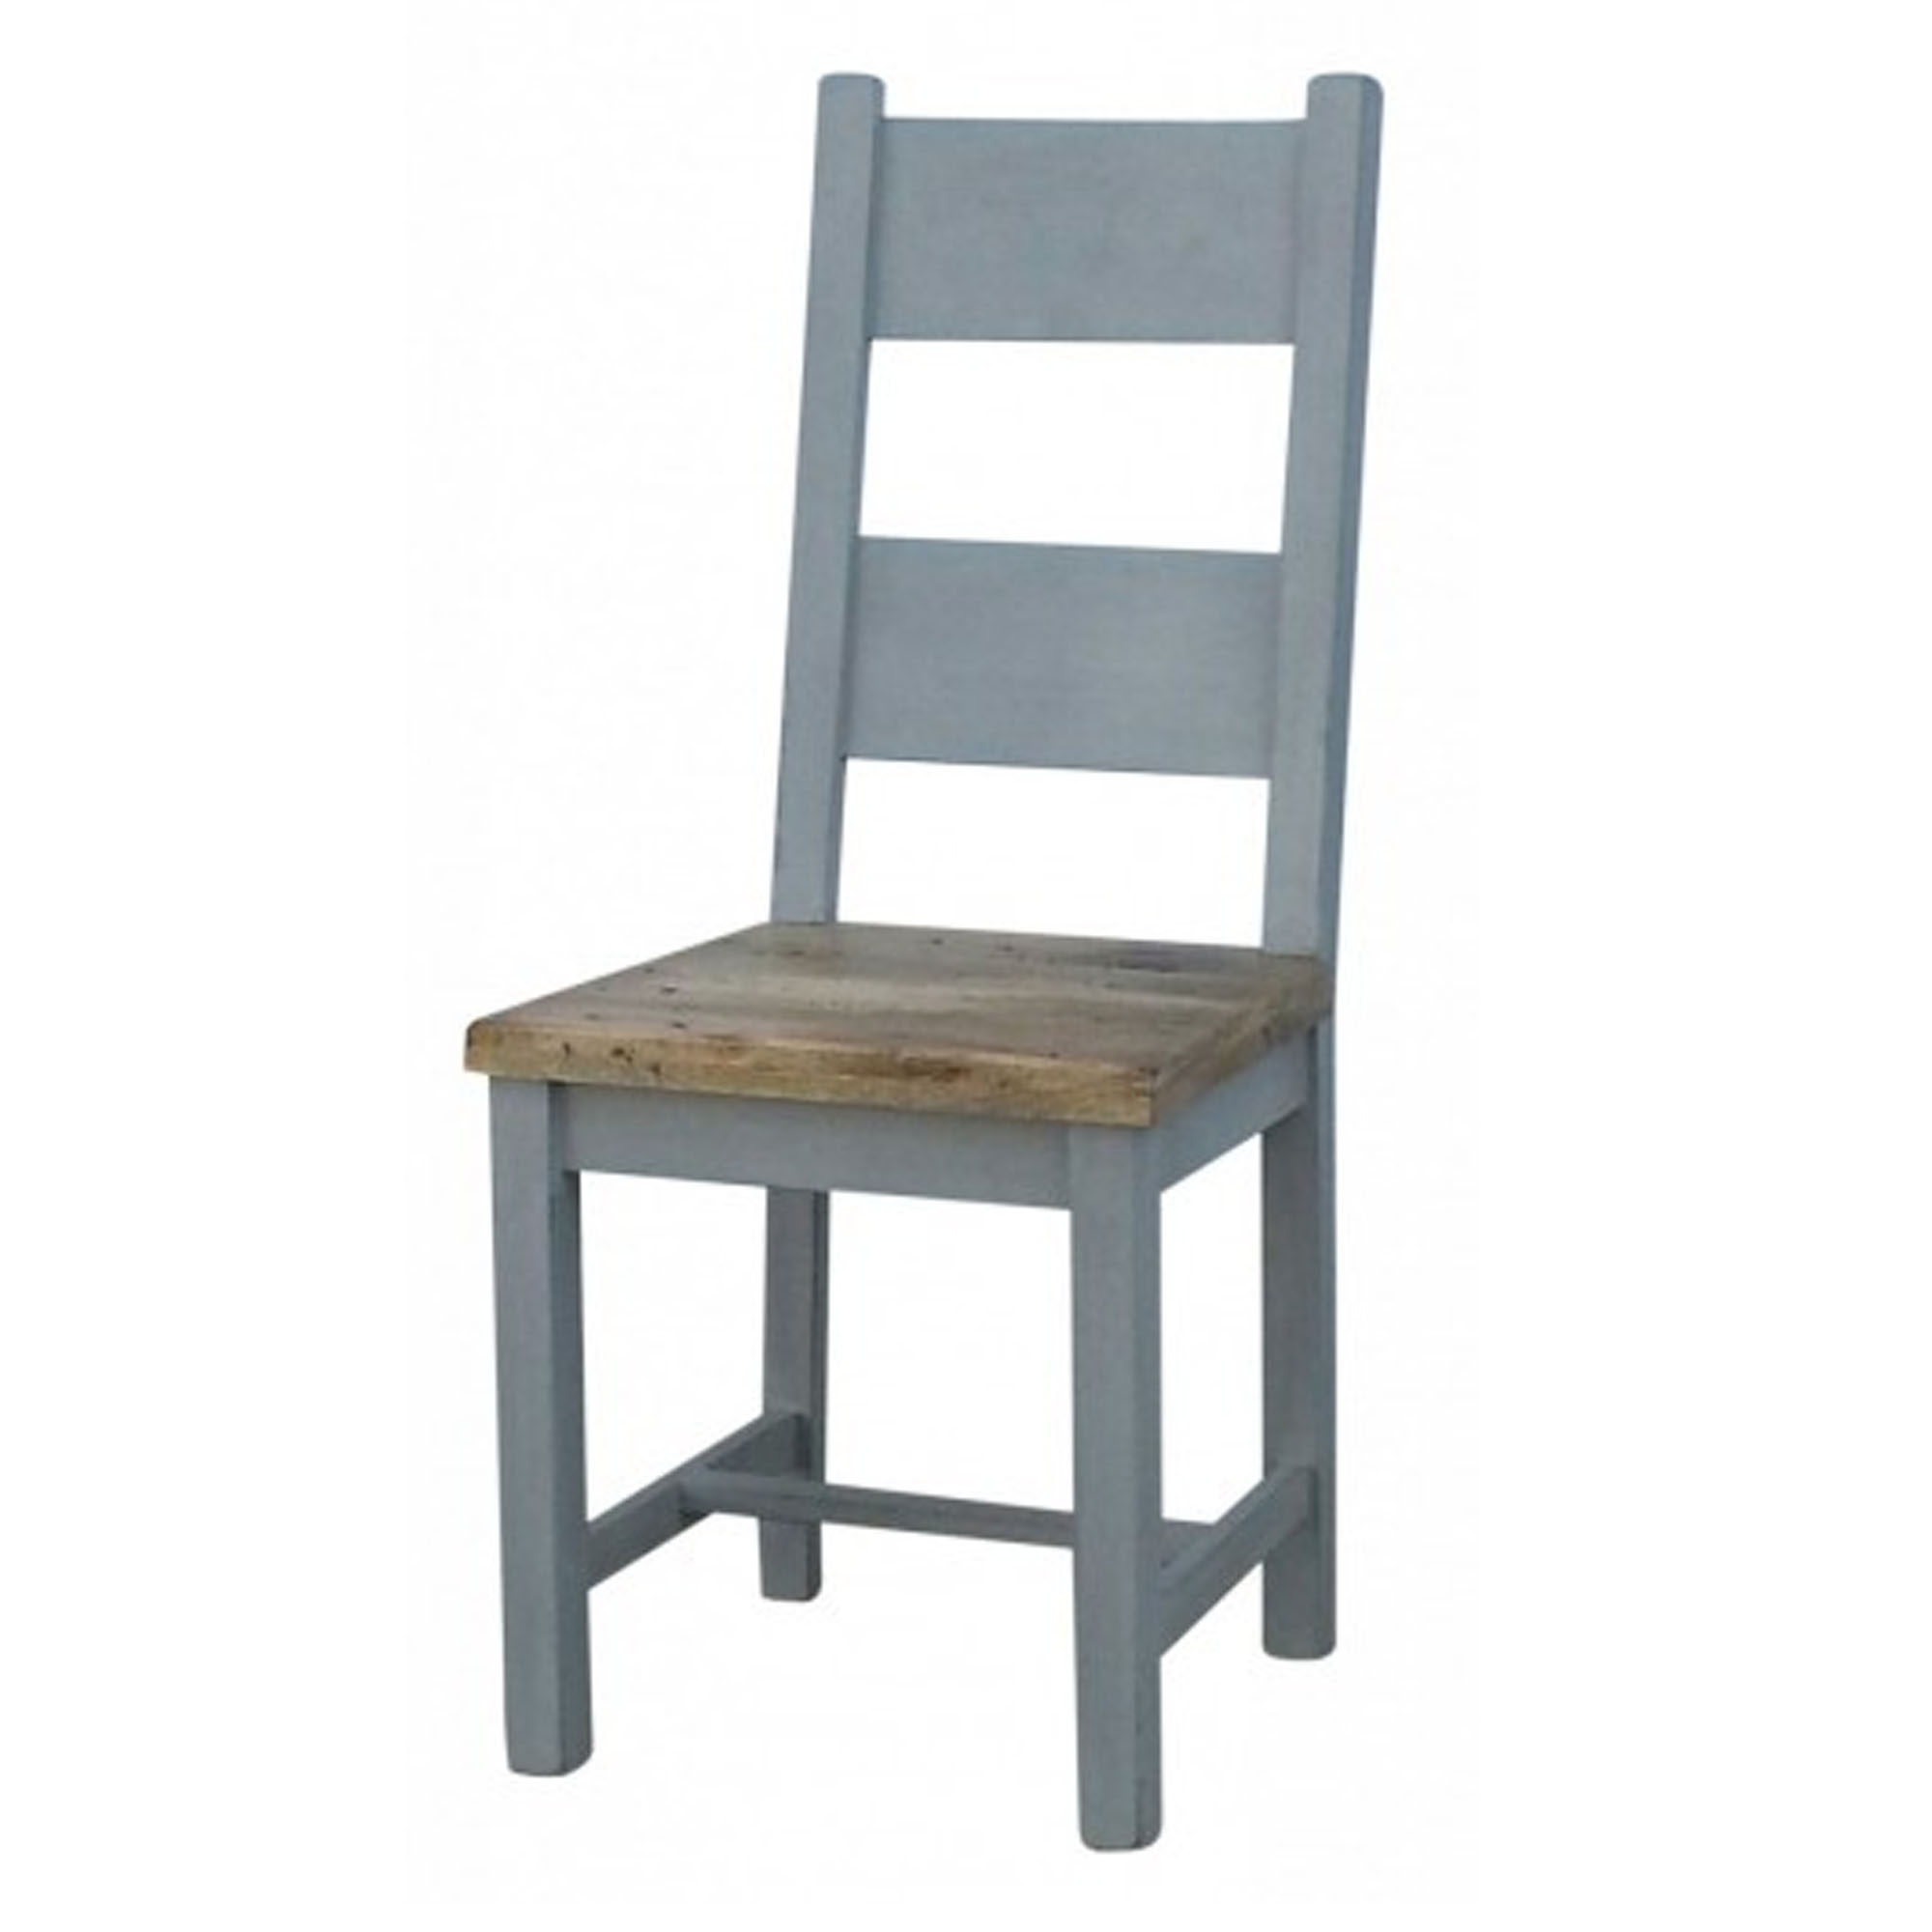 colorado shabby chic chair 1 shabby chic furniture dining chairs rh homesdirect365 co uk shabby chic chairs for bedroom shabby chic chairs northern ireland